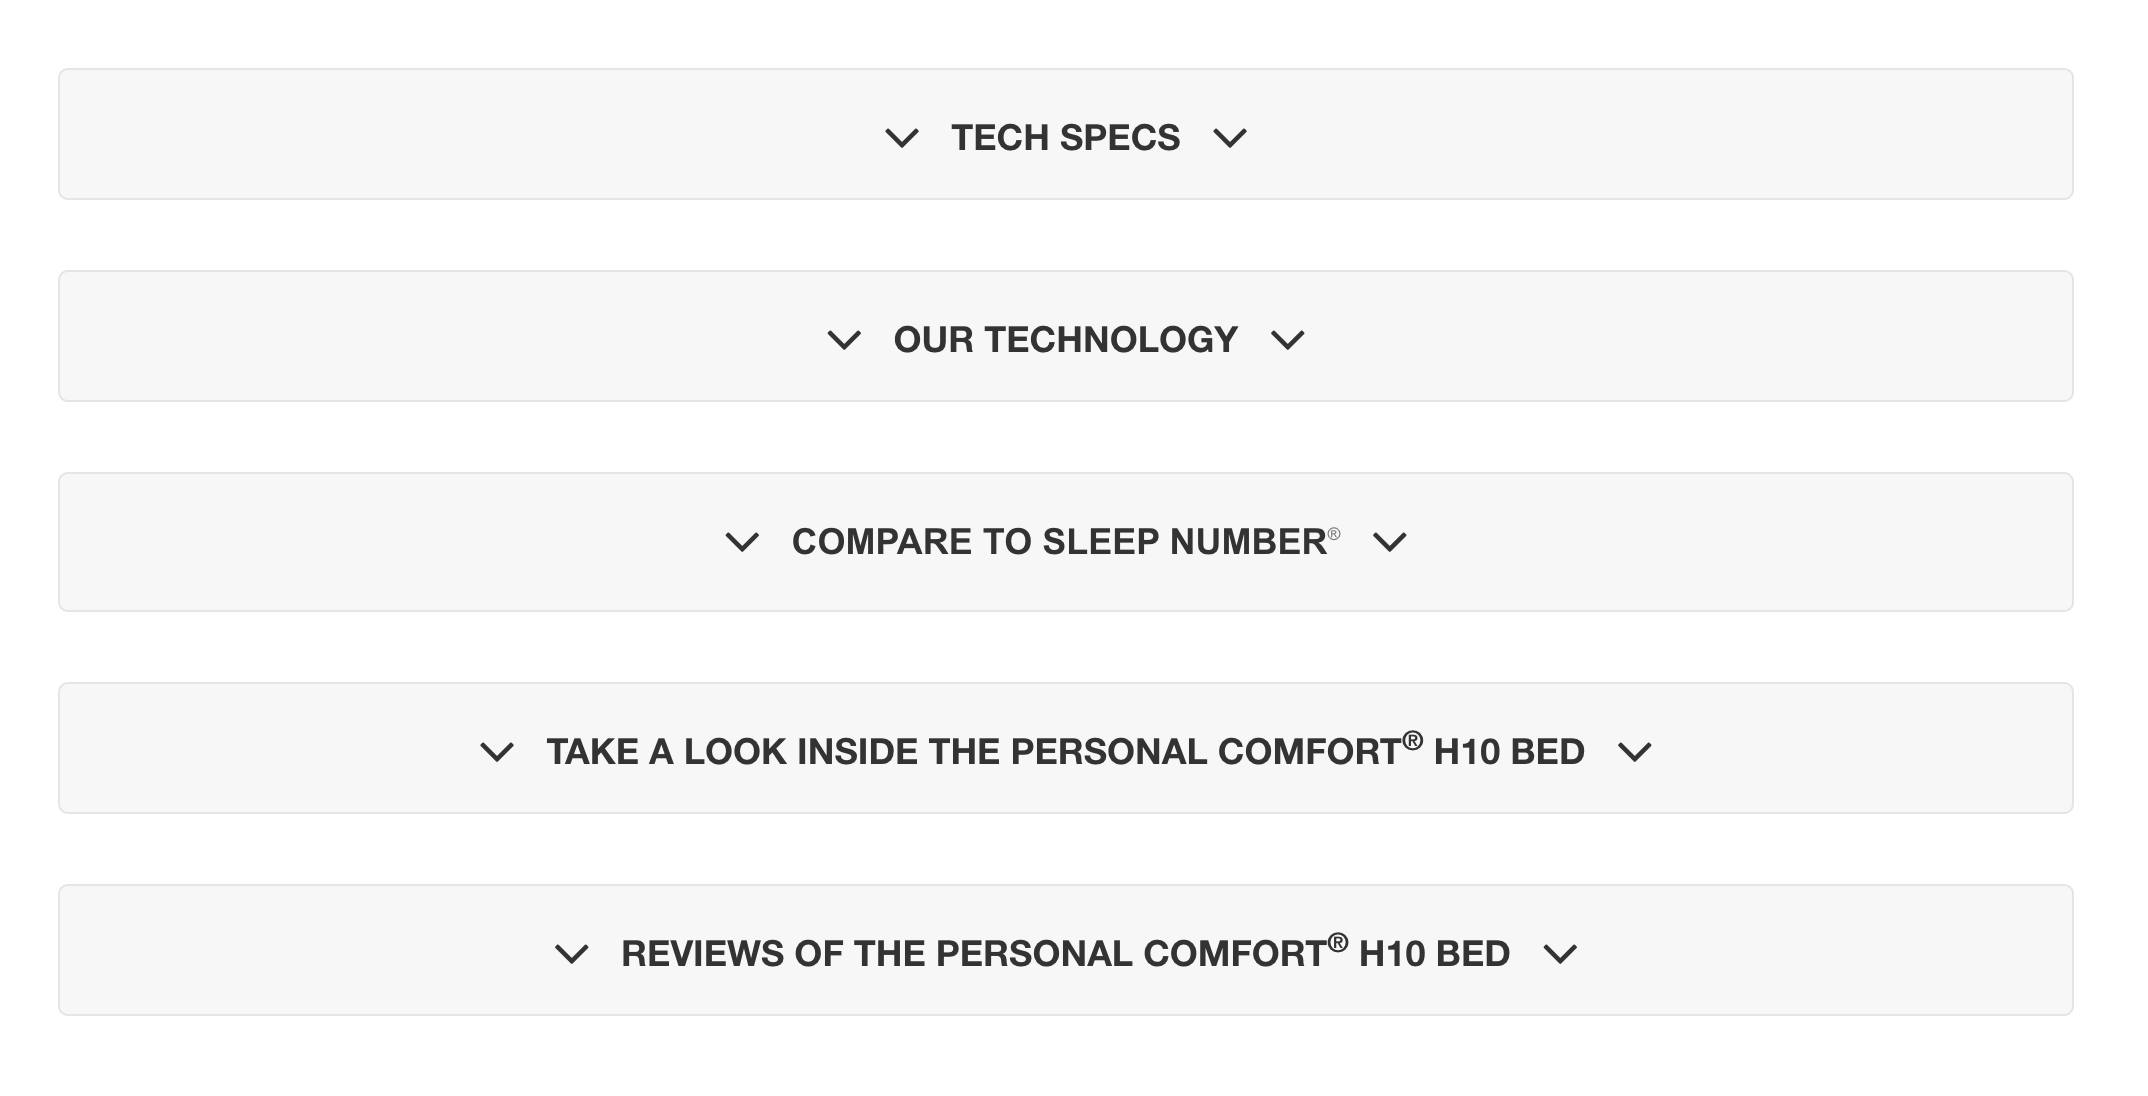 Personal Comfort's product pages have expandable menus